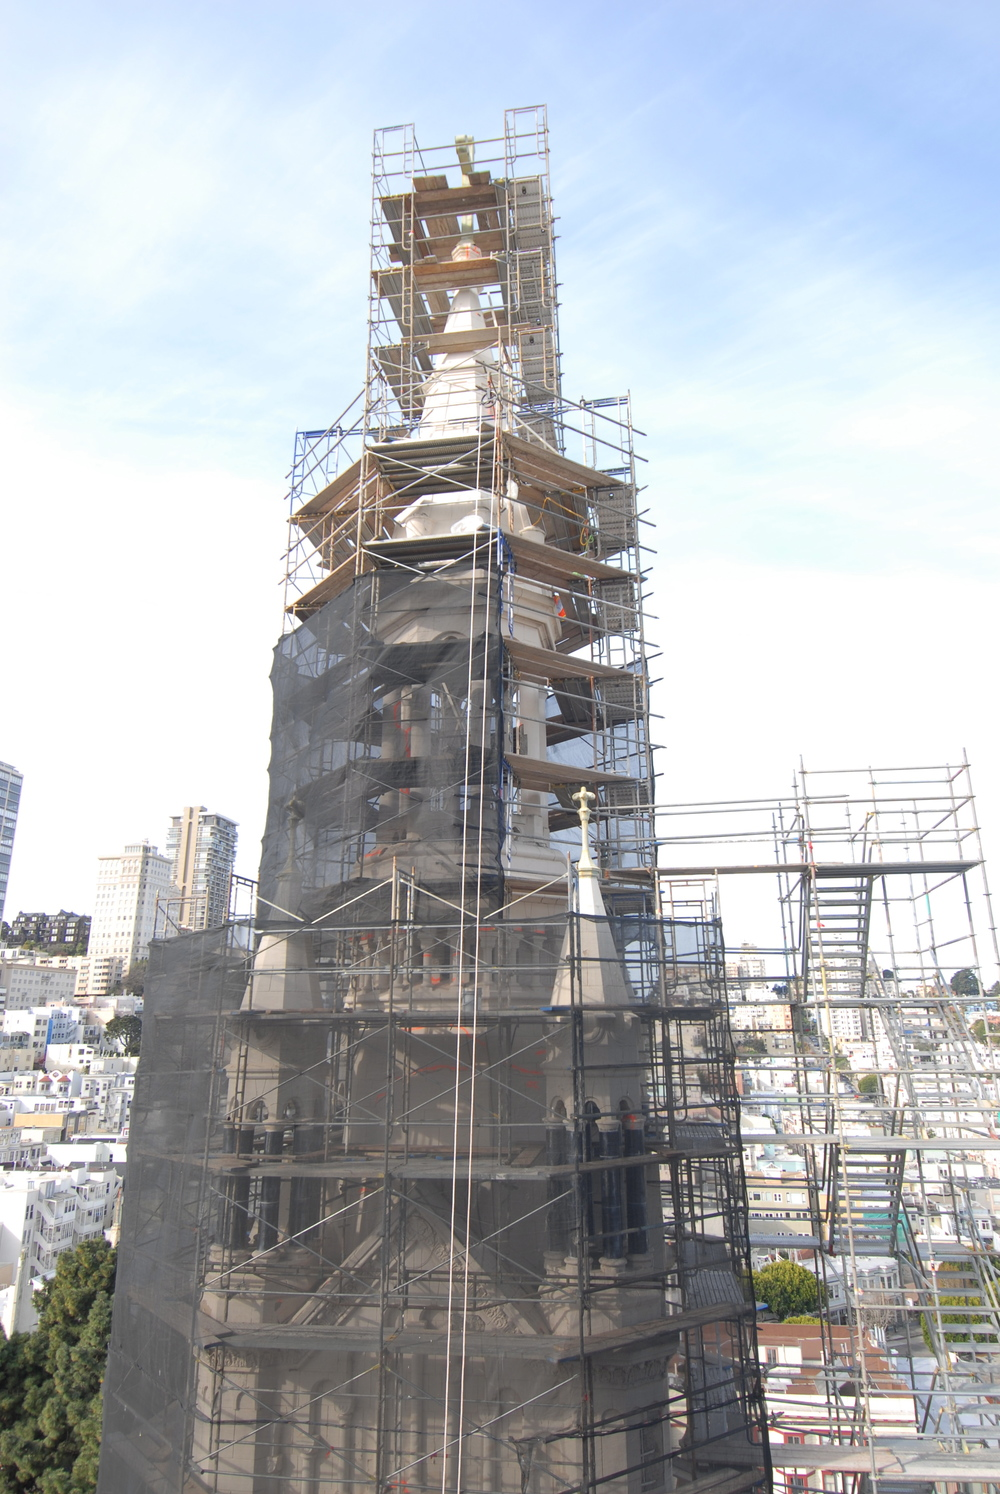 Saints Peter and Paul Church - close-up of Tower scaffold